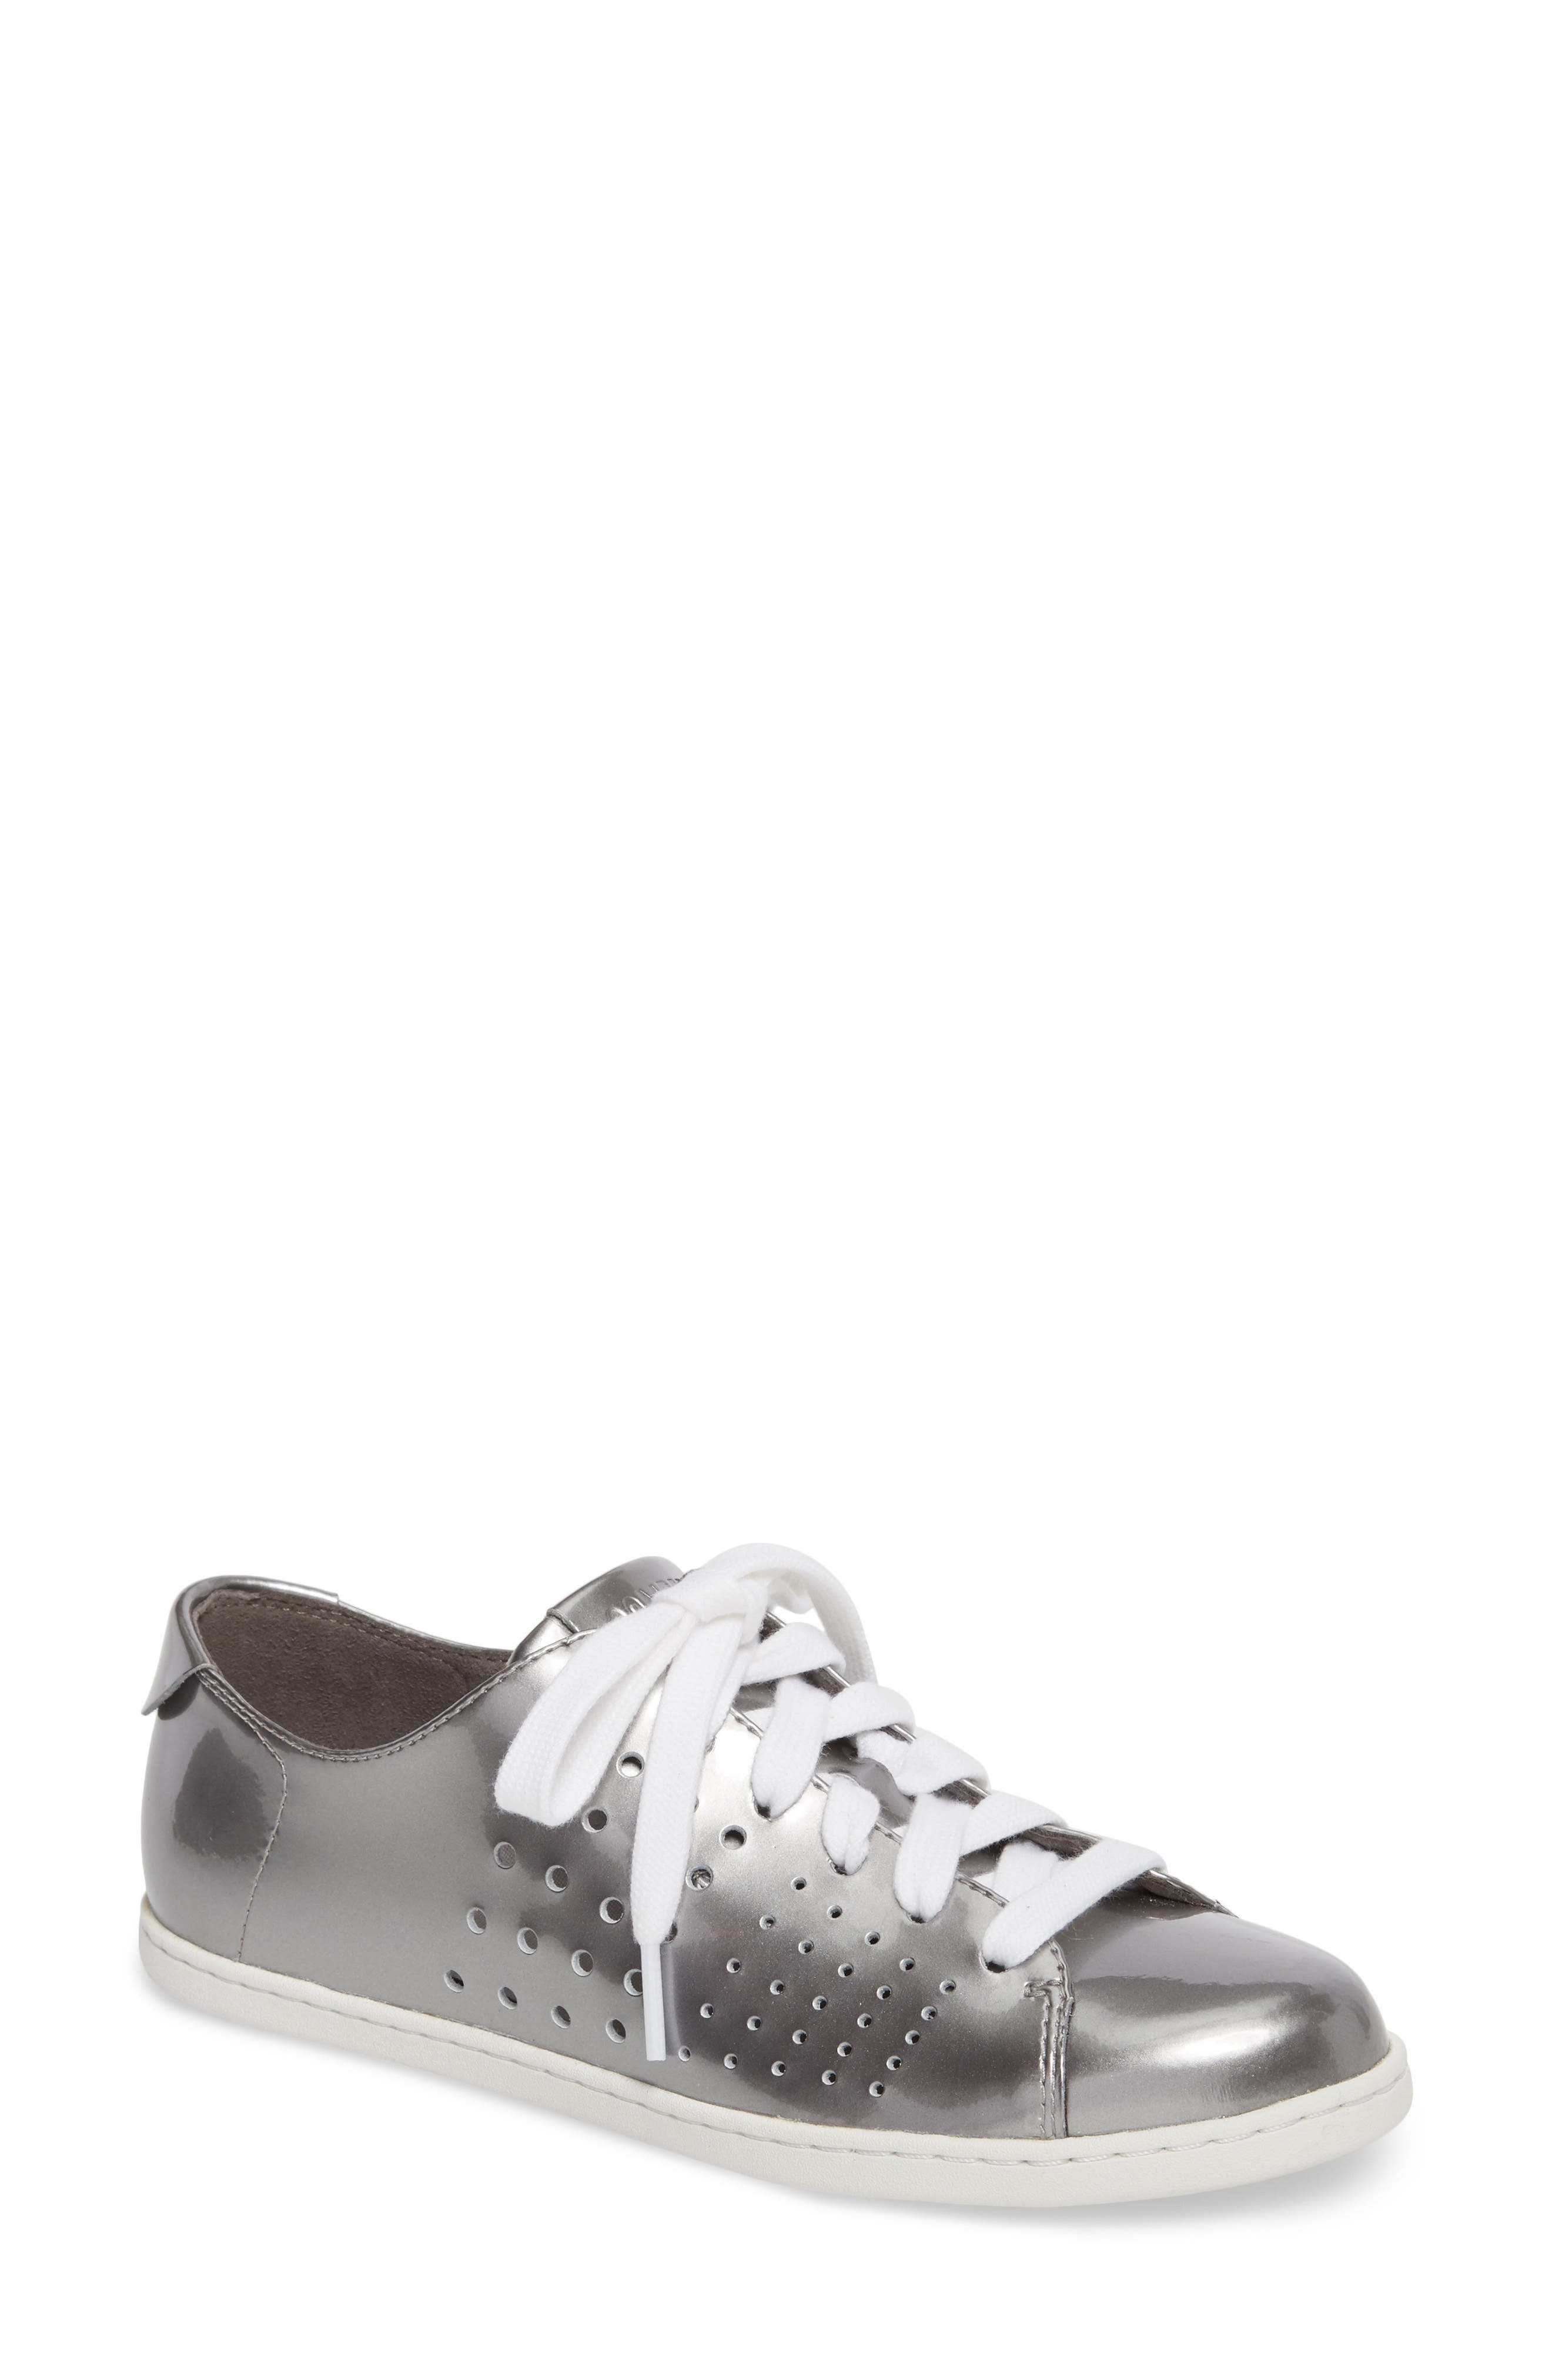 Twins Perforated Low Top Sneaker,                             Main thumbnail 1, color,                             030